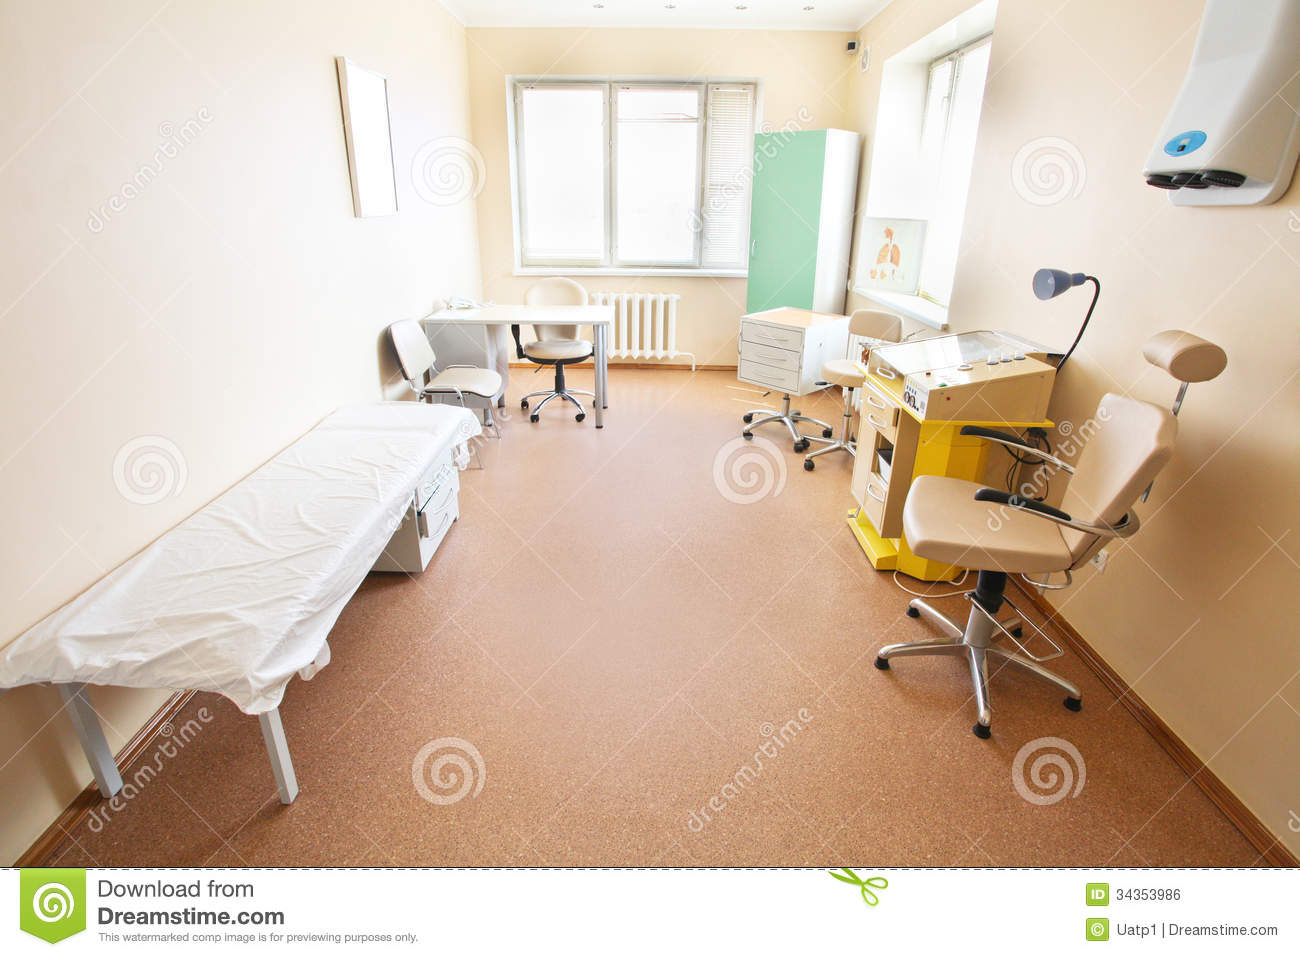 Furniture In Hospital Rooms